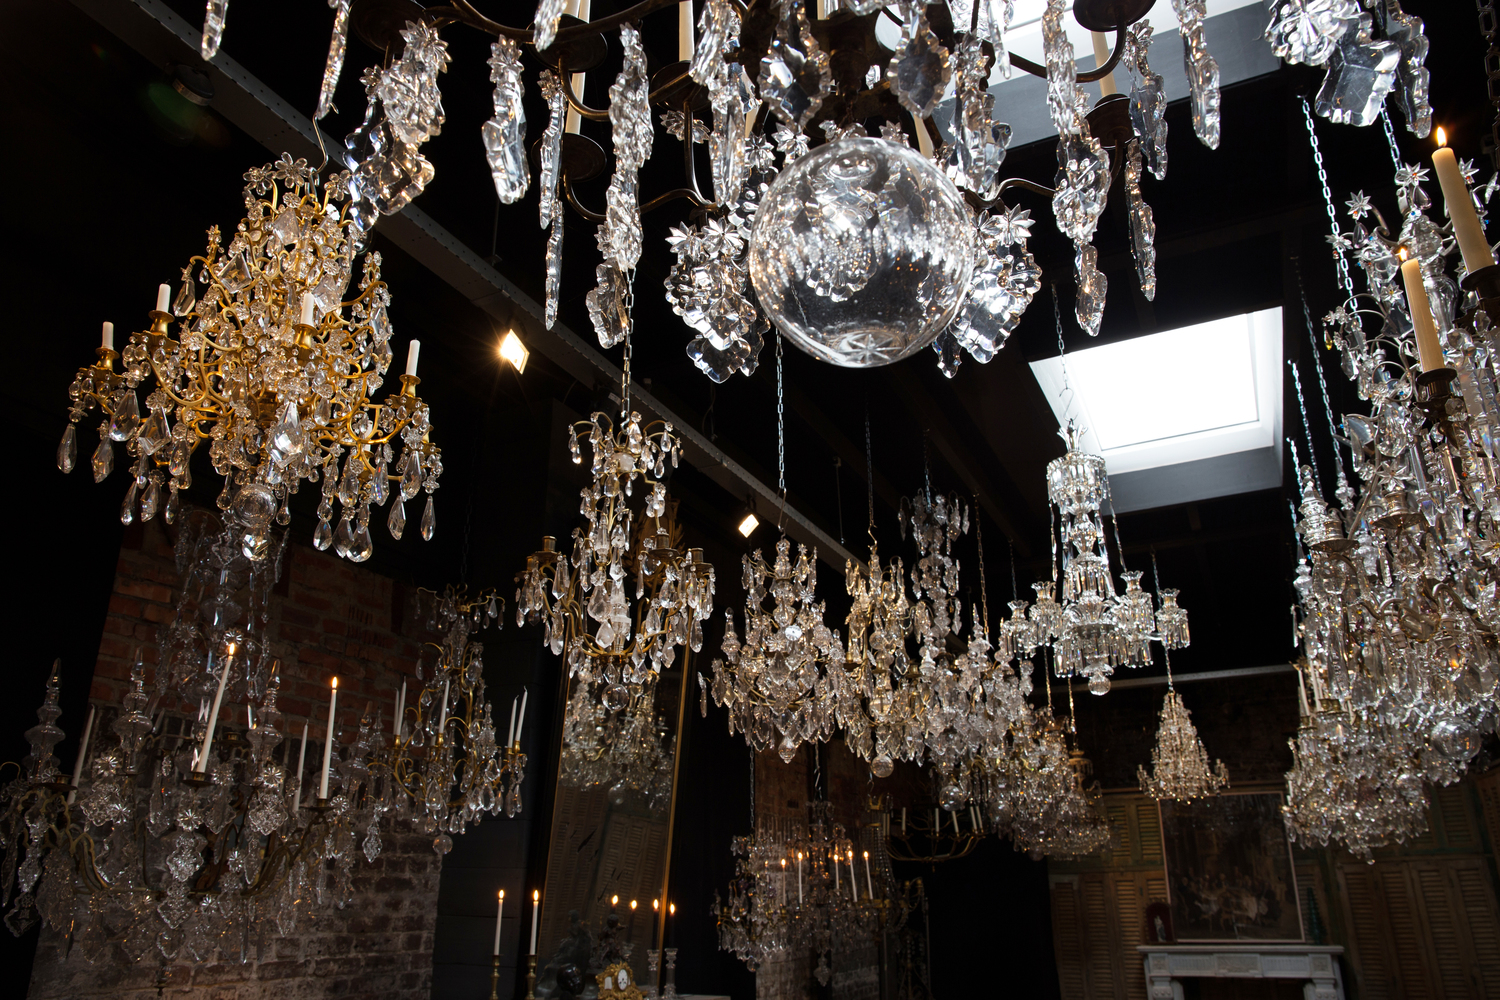 Epic Collection of chandeliers of Pascal Mestrom Chandeliers Maastricht u The Netherlands Image source here